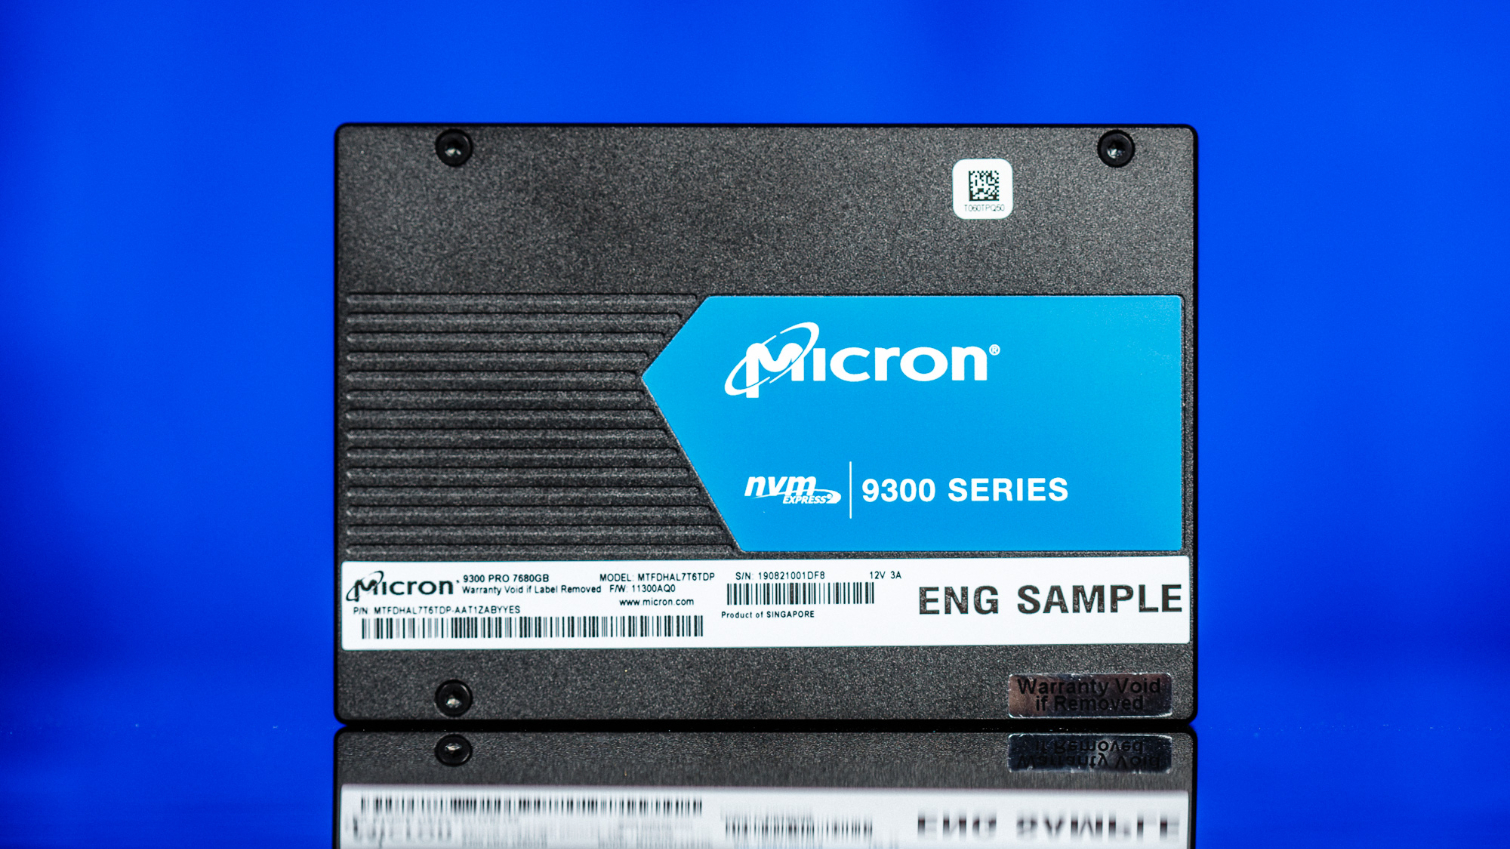 Micron 9300 Series Enterprise Nvme Ssd Review Finding Balance In Performance Tom S Hardware Tom S Hardware